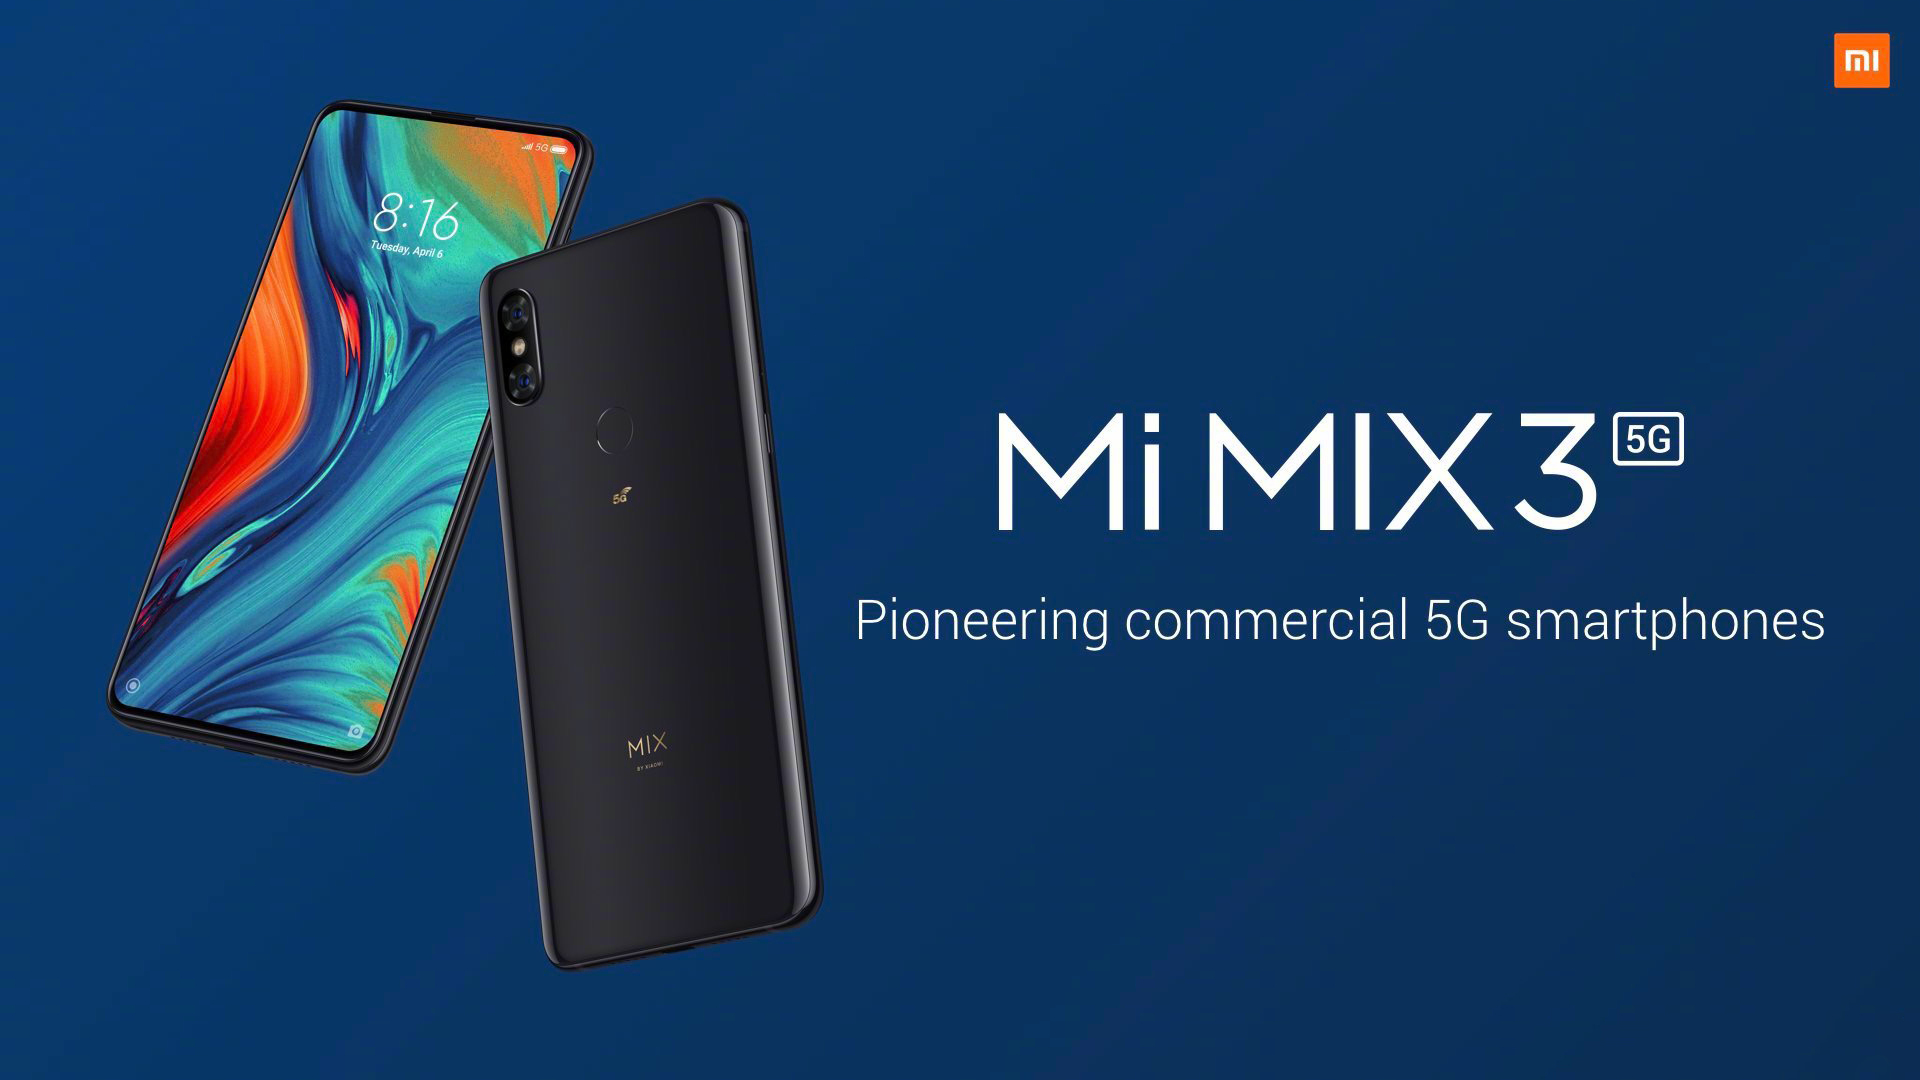 Mi Mix 3 5G Switzerland